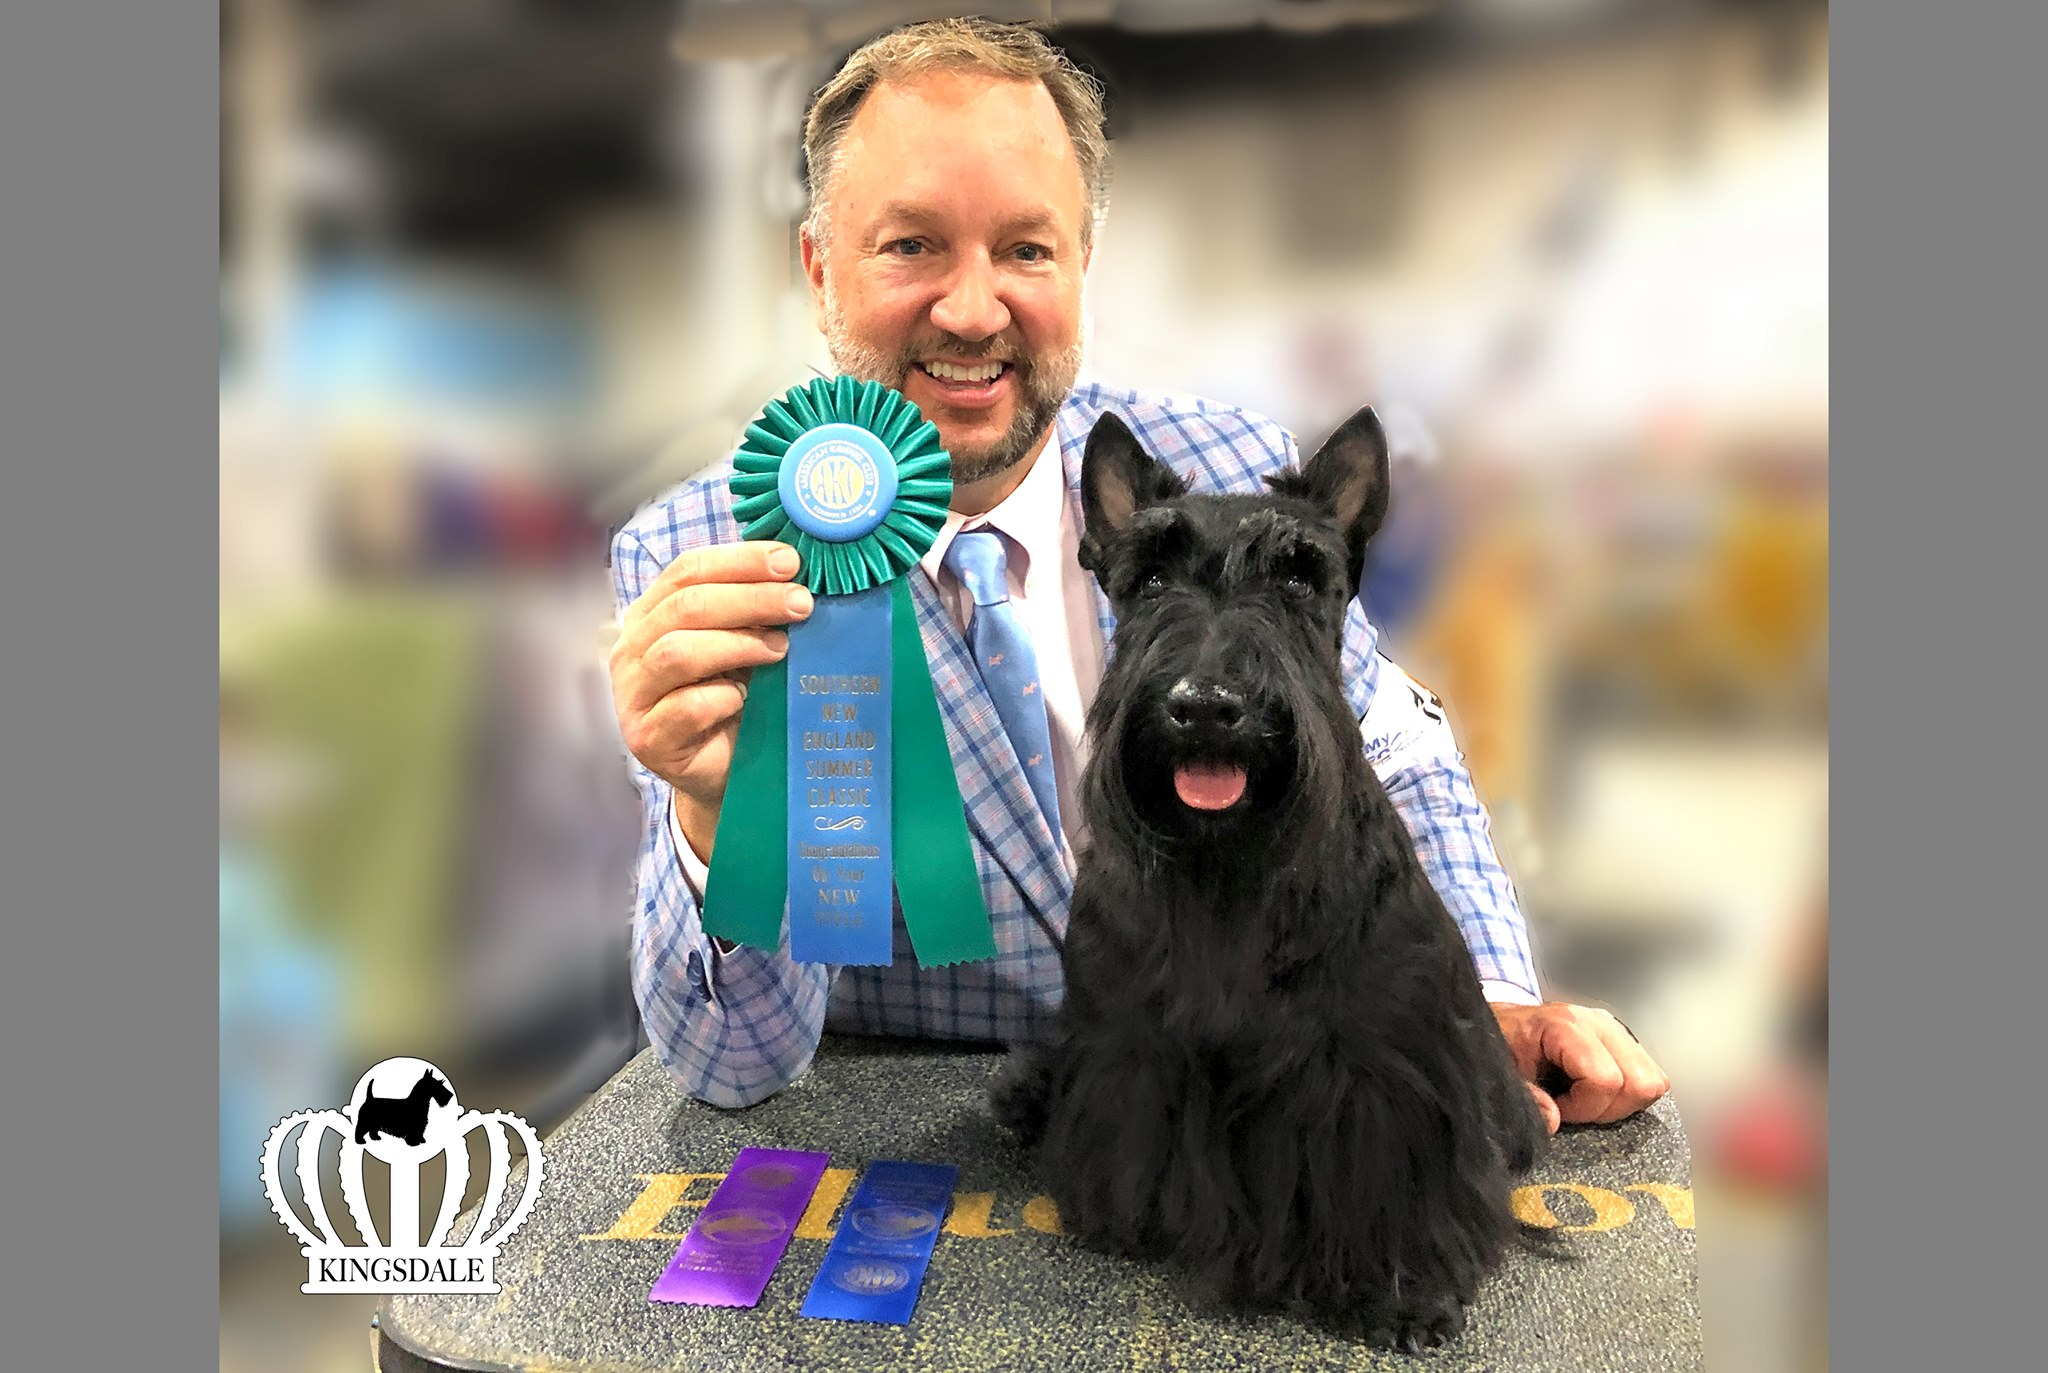 Geoff Dawson, professional dog handler, with new champion Scottish Terrier, Glenn Eyrie's You Be U at Kingsdale